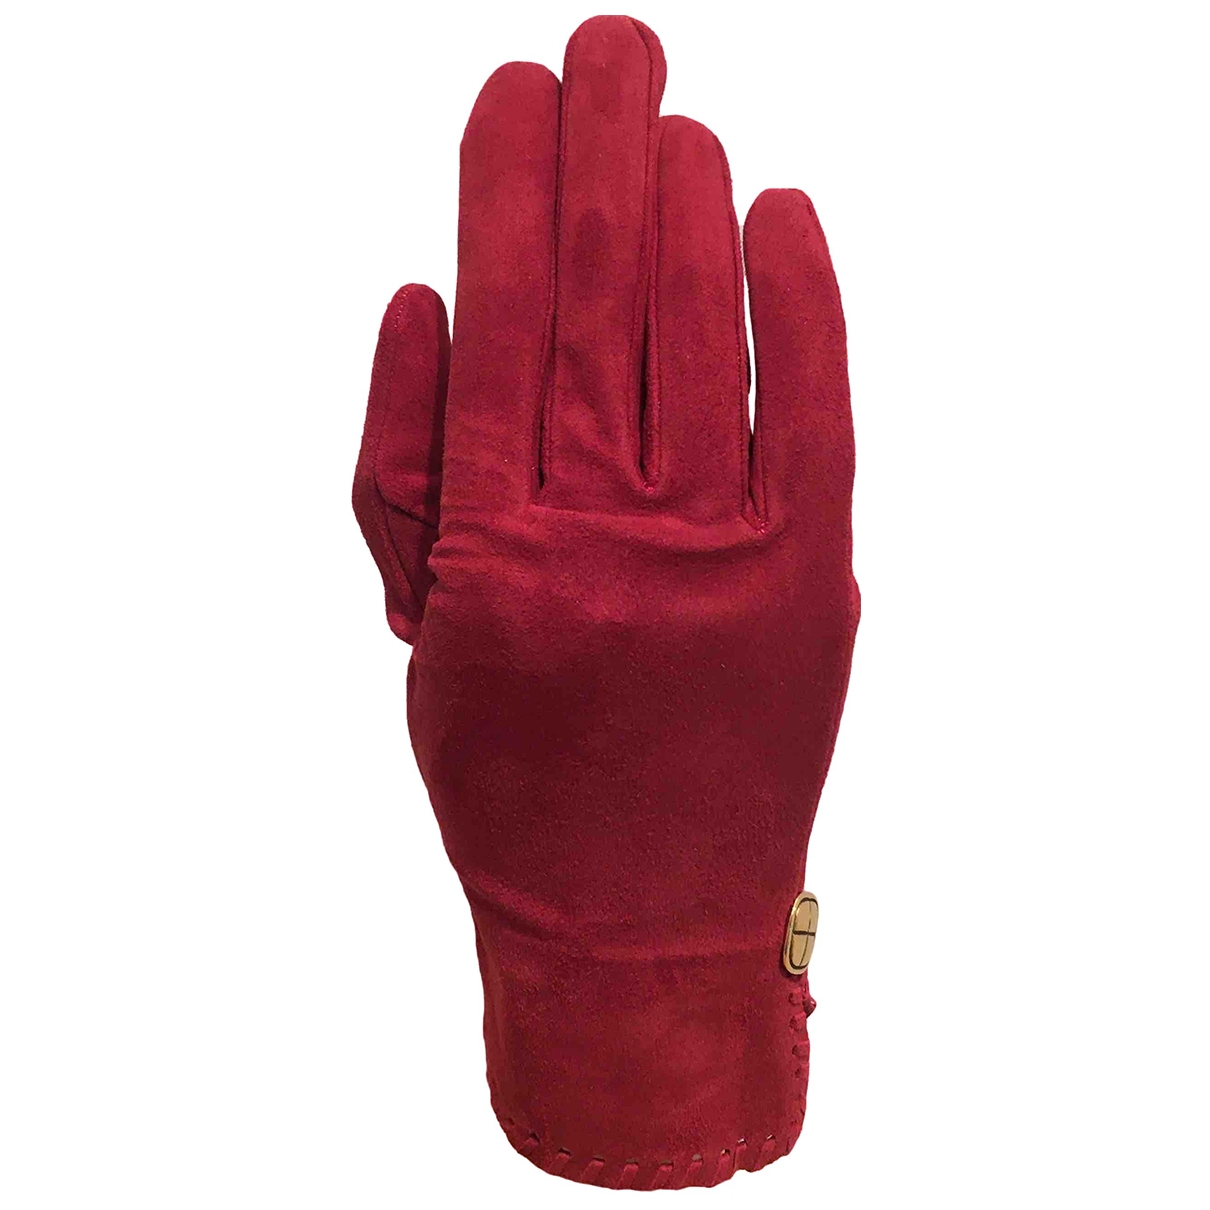 Chanel \N Red Suede Gloves for Women XS International